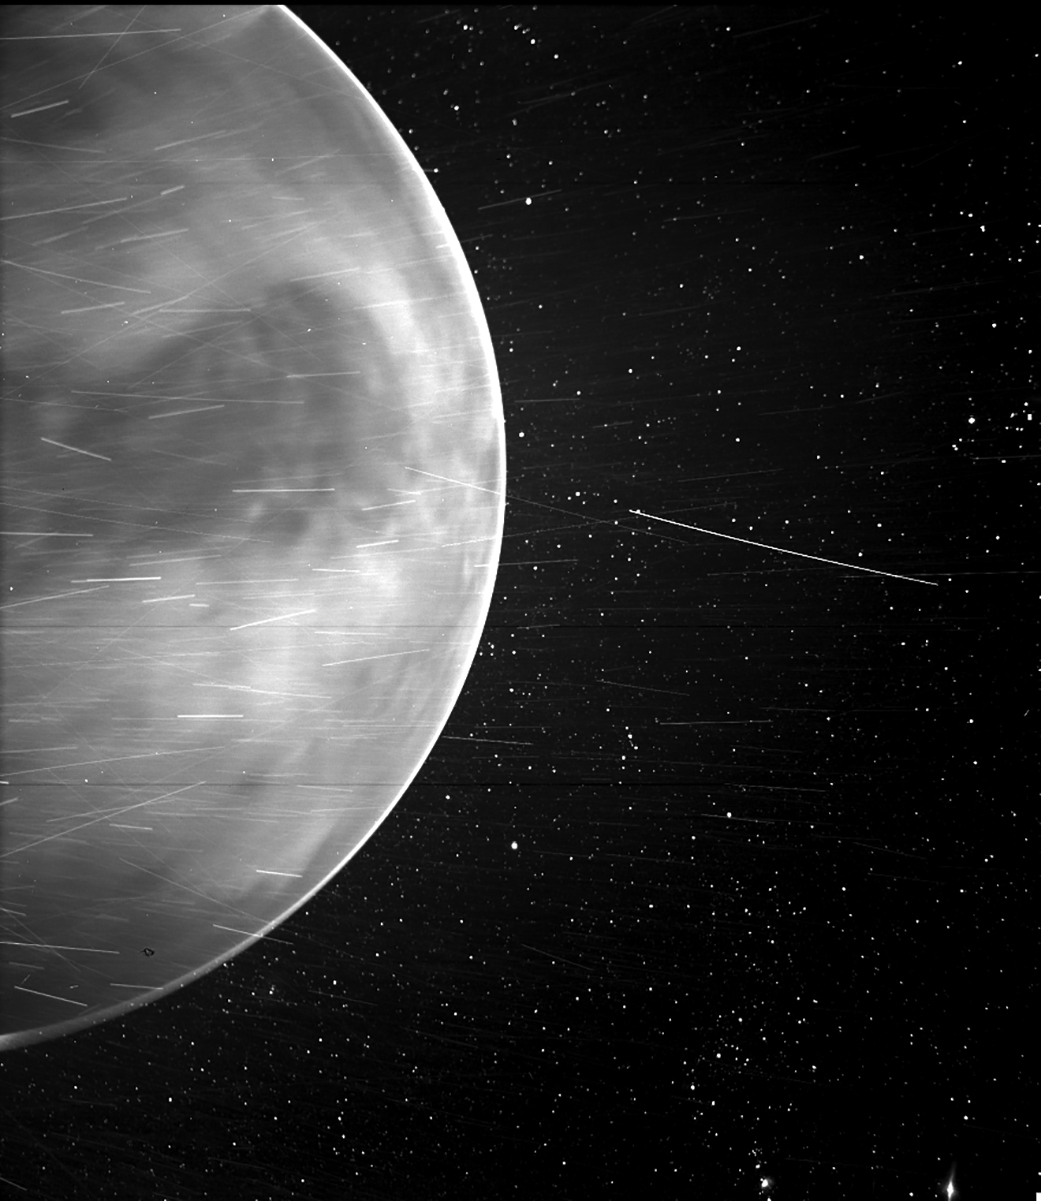 During a brief swing by Venus, Parker Solar Probe detected a natural radio signal that revealed the spacecraft had flown through the planet's upper atmosphere. This was the first direct measurement of the Venusian atmosphere in nearly 30 years — and it looks …